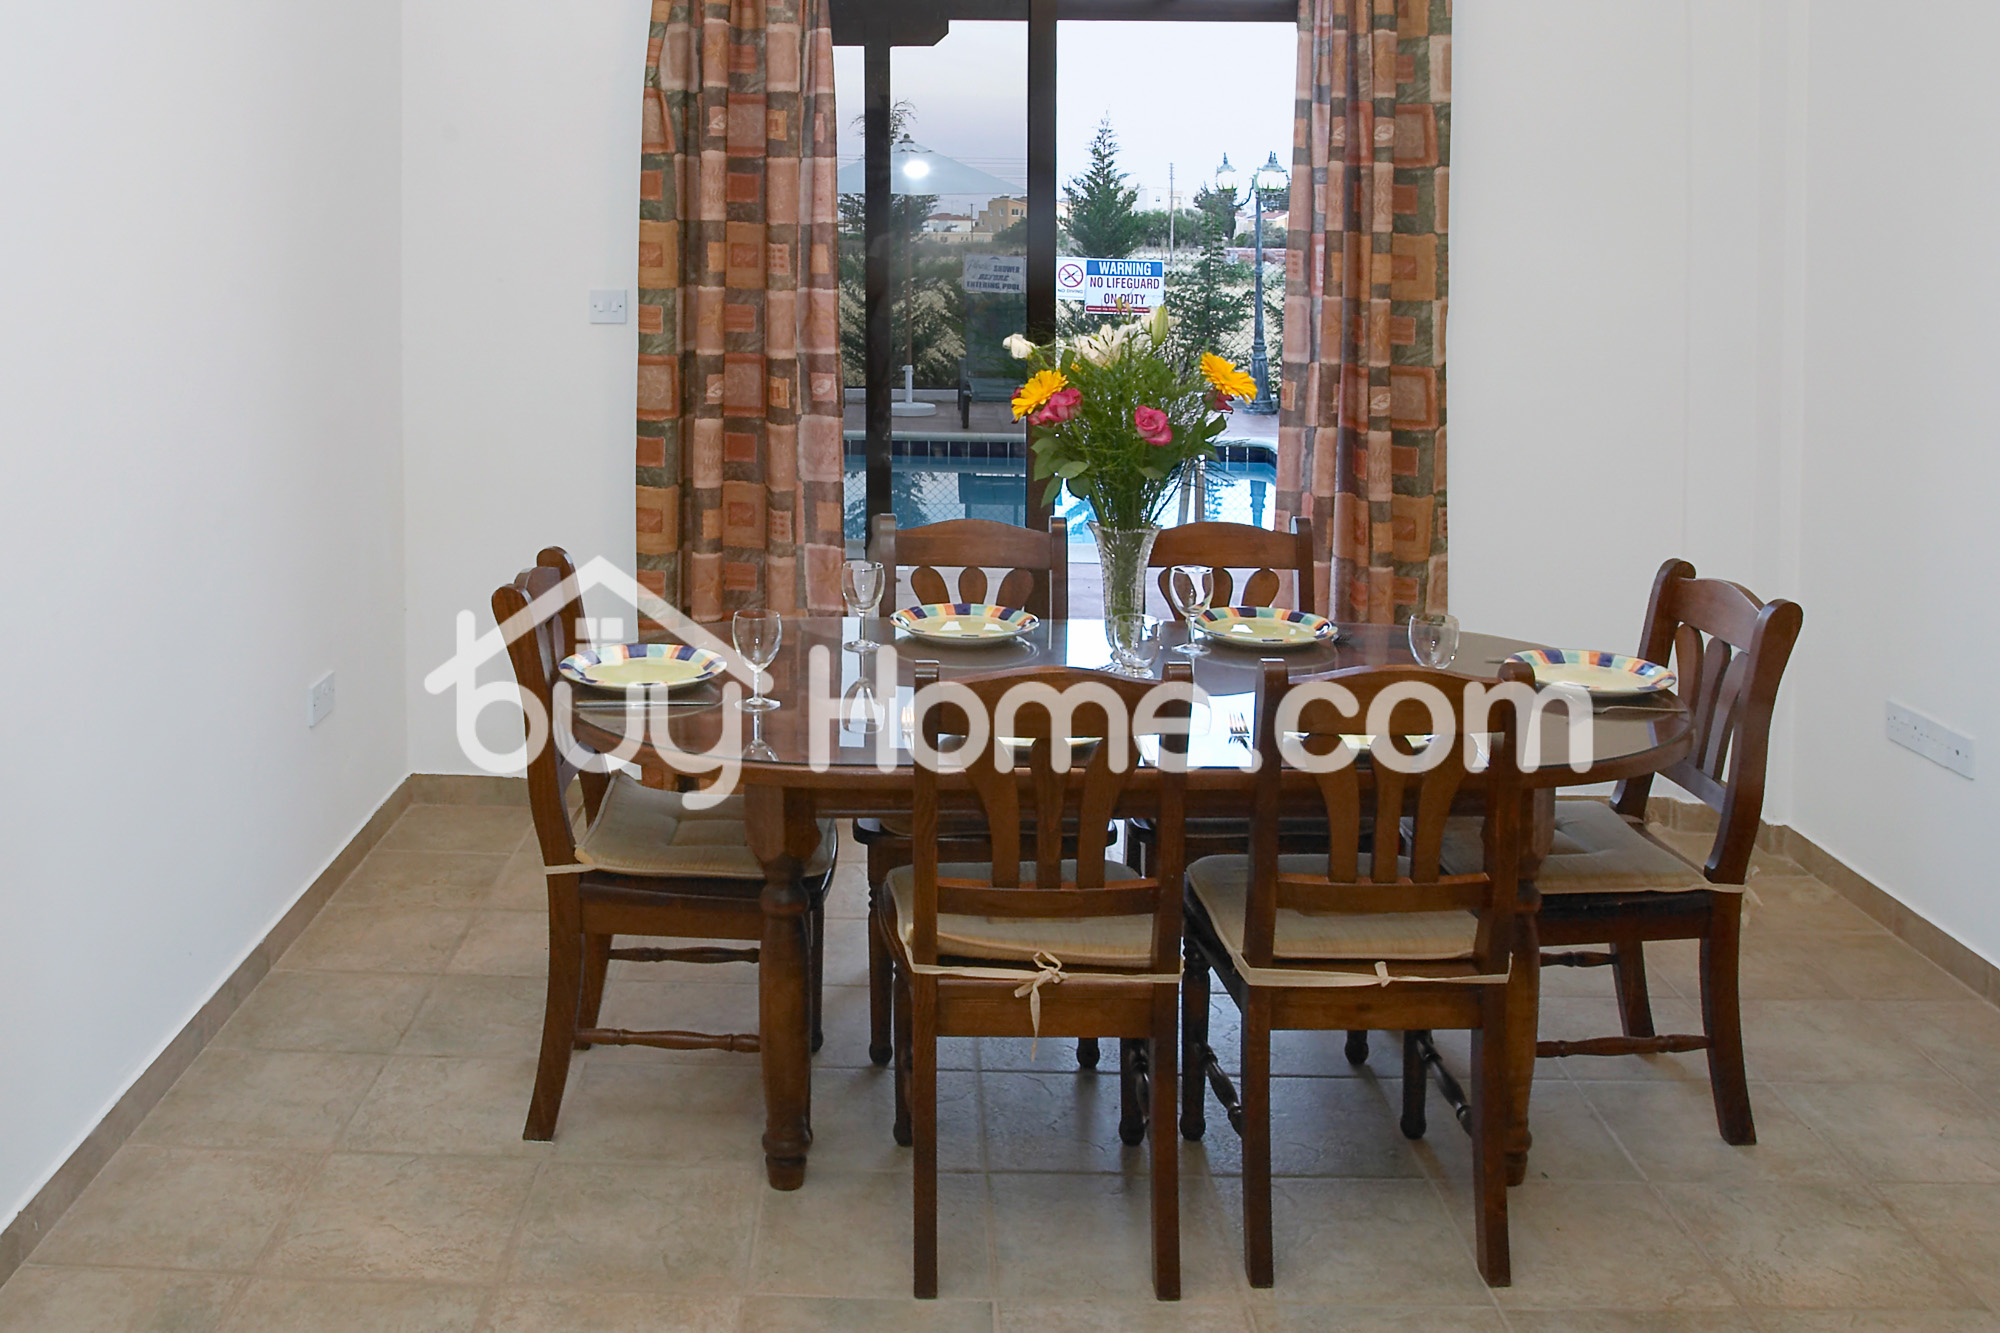 4 BDR house for rent | BuyHome